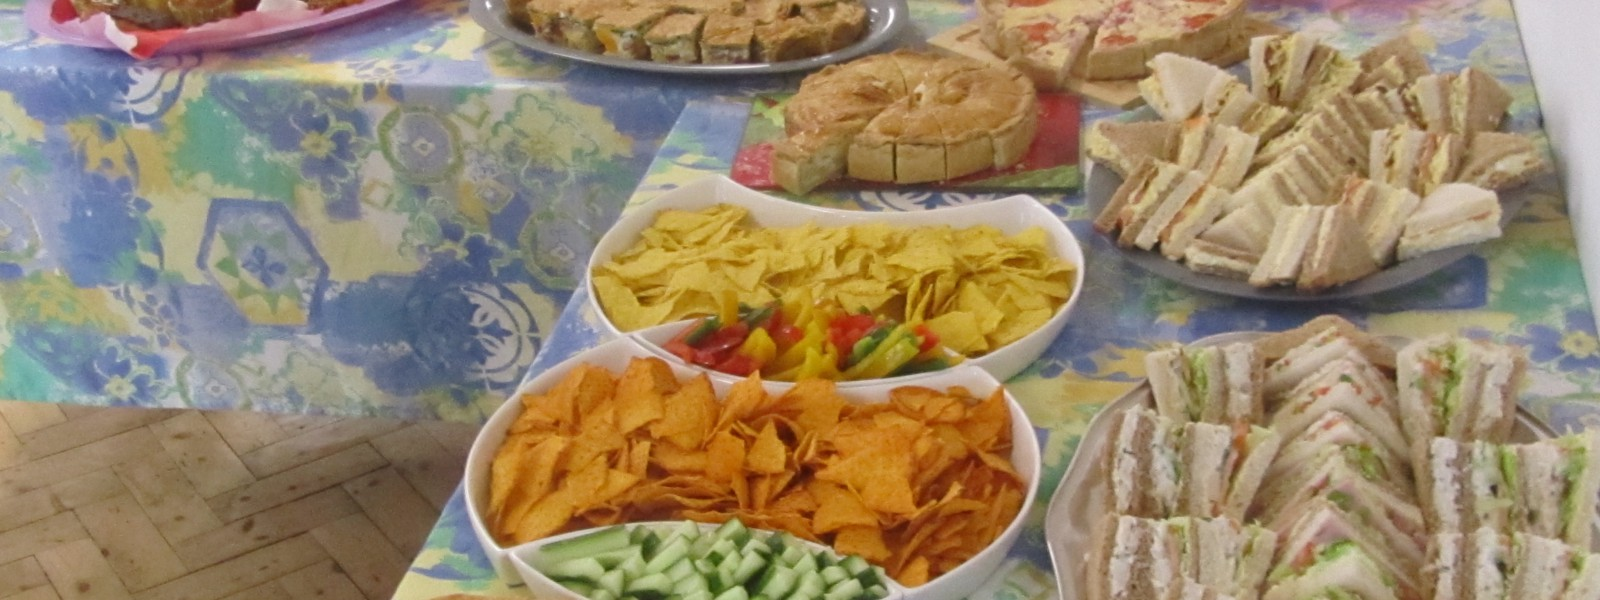 buffet community cafe, wake, catering